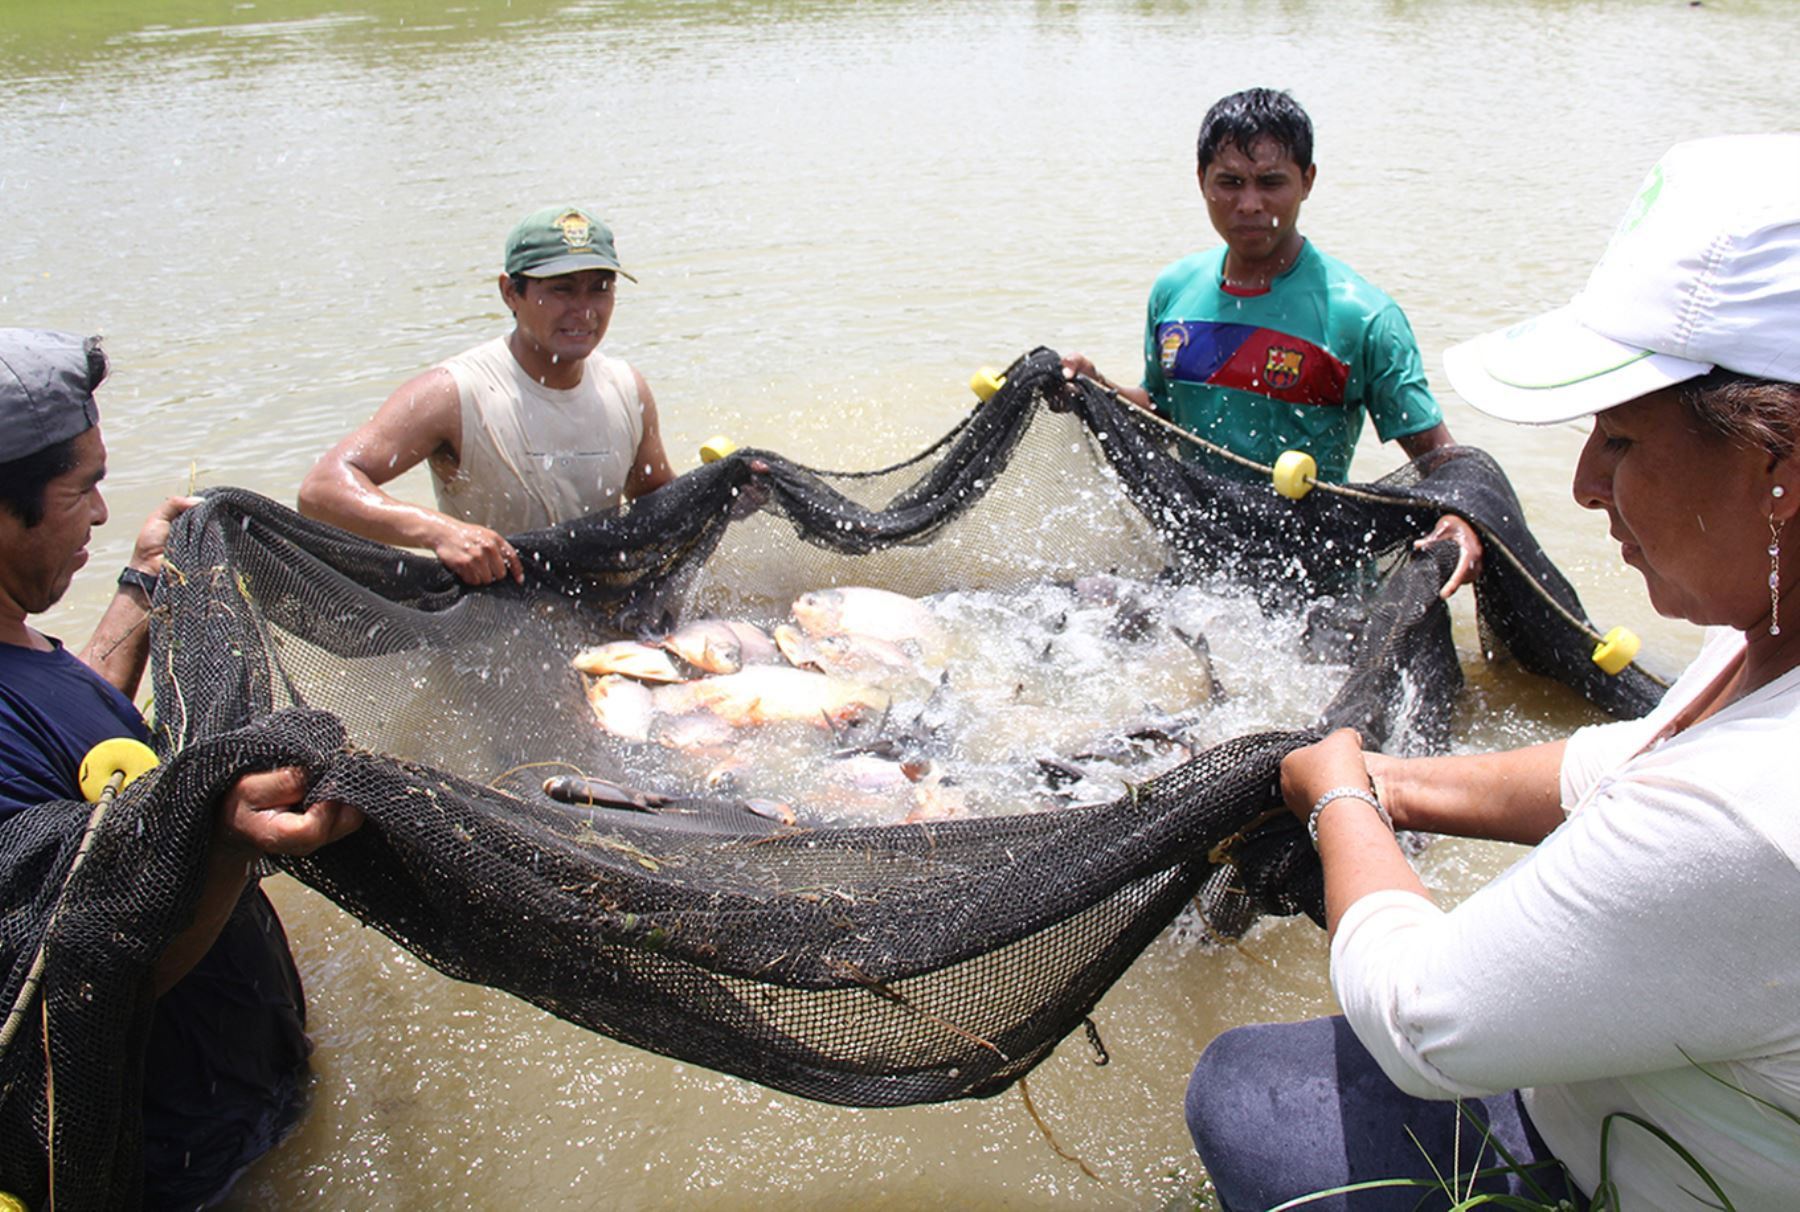 Aquaculture industry created over 102,000 jobs in Peru last